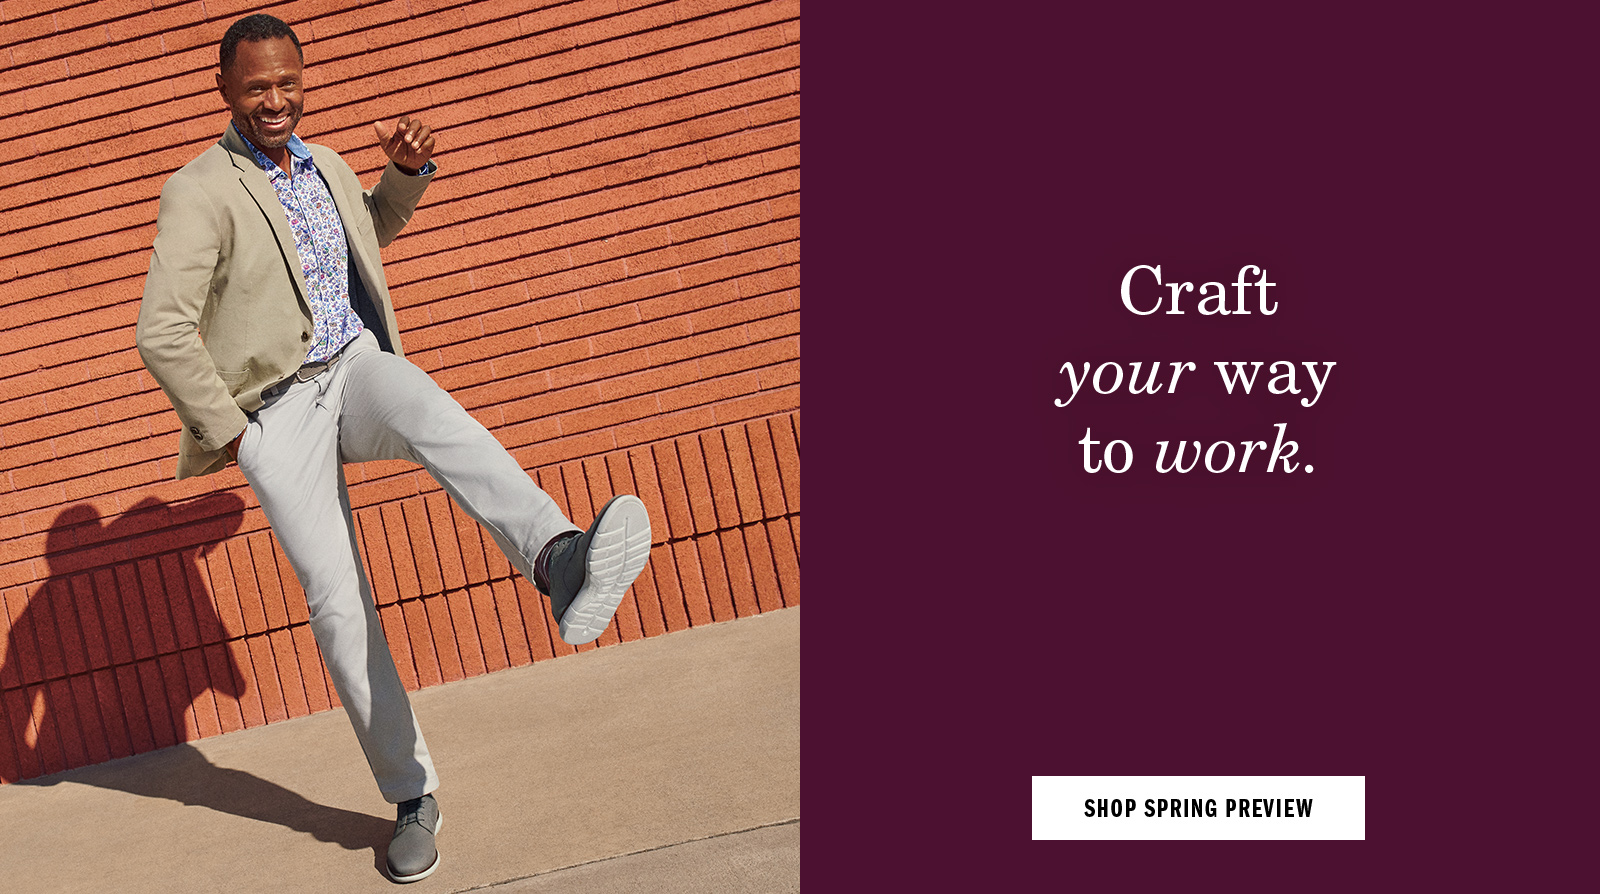 Craft your way to work - Shop Spring Preview for Men